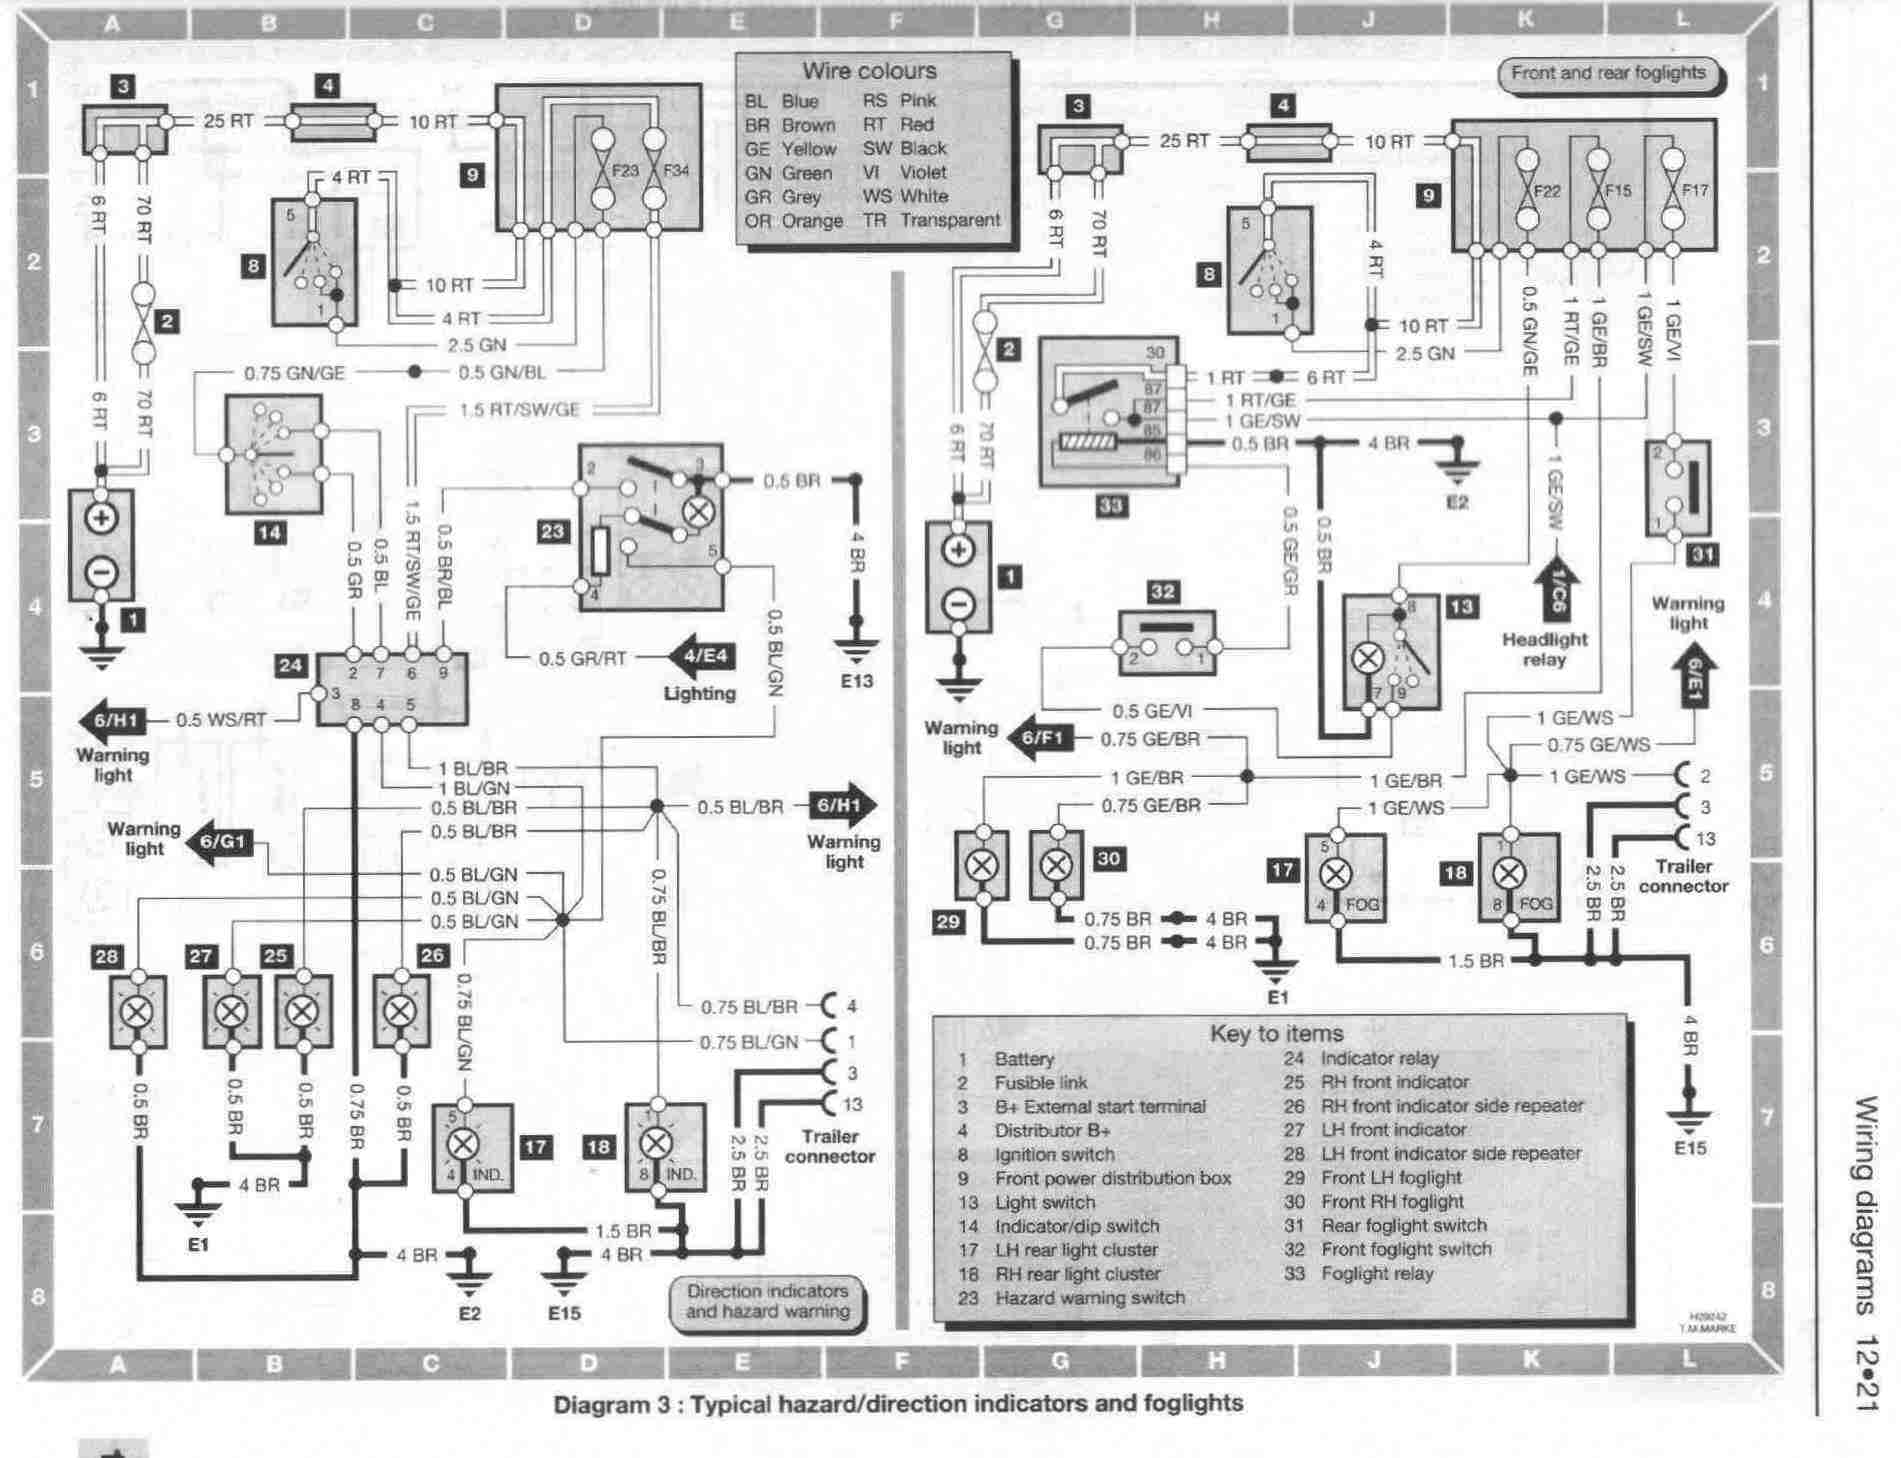 foglamp wiring wiring diagram for international 656 the wiring diagram ih wiring diagrams at cita.asia